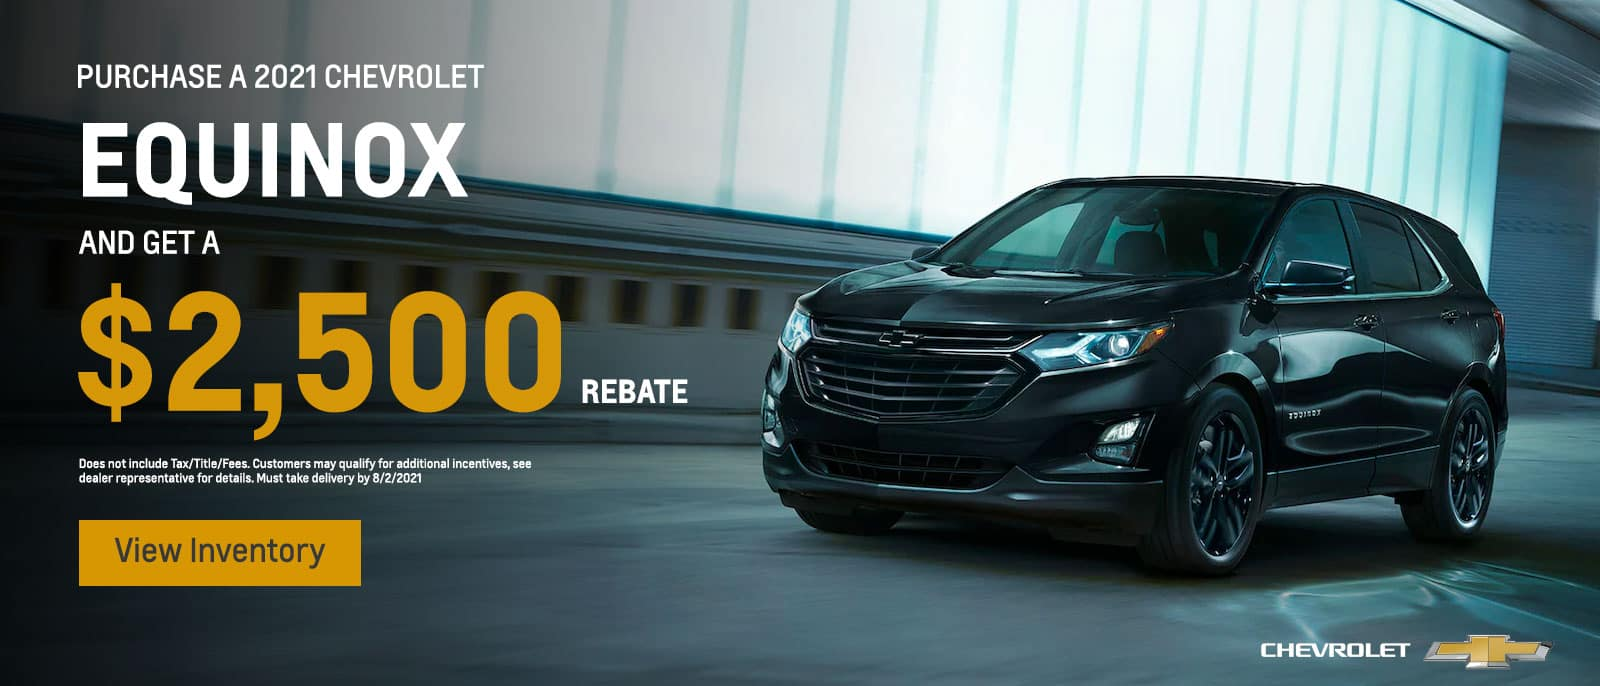 Purchase a 2021 Chevrolet Equinox and get a $2,500 Rebate